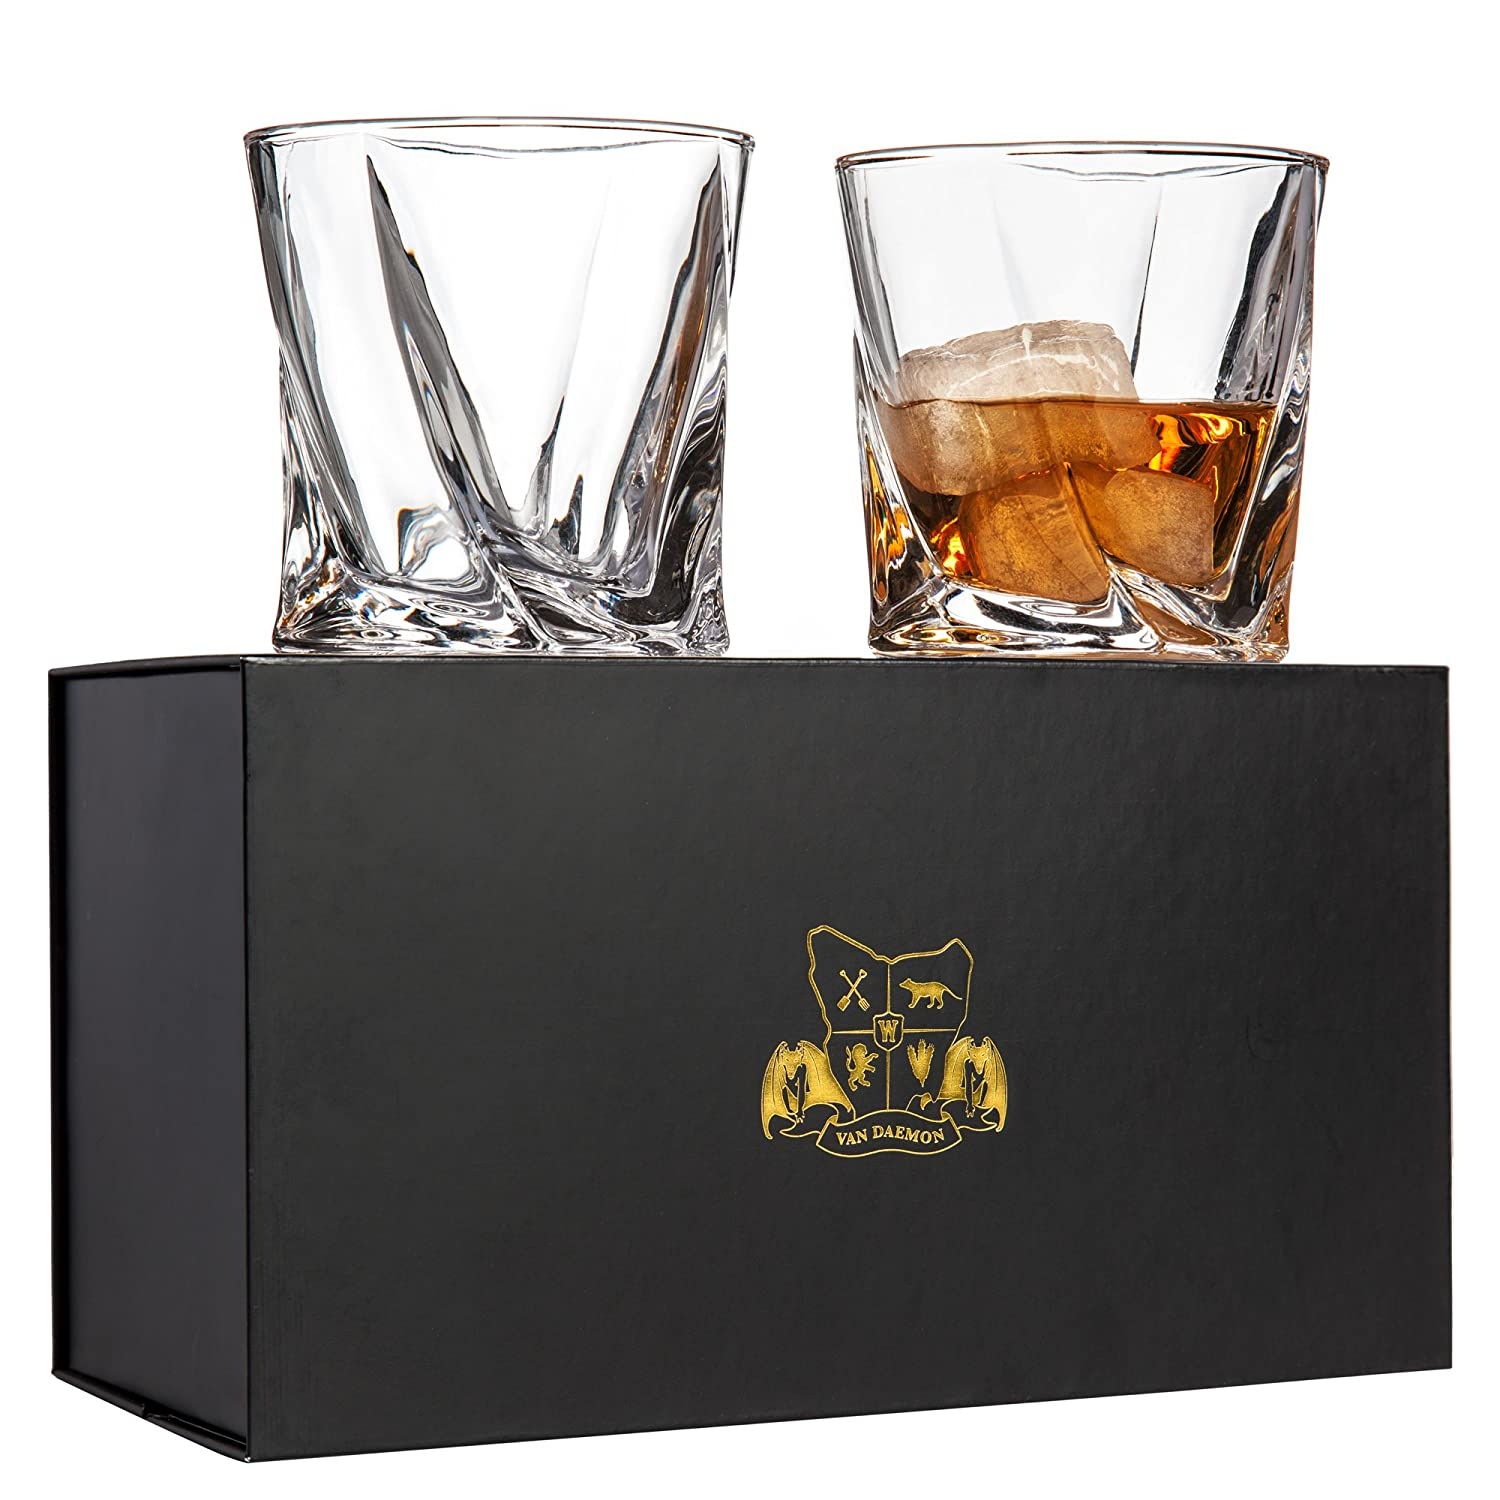 Twist Whiskey Glasses Set of 2. Lead Free Crystal Rocks Tumblers (10oz) by Van Daemon for Liquor, Bourbon or Scotch. Perfectly Gift Boxed. M13684-100